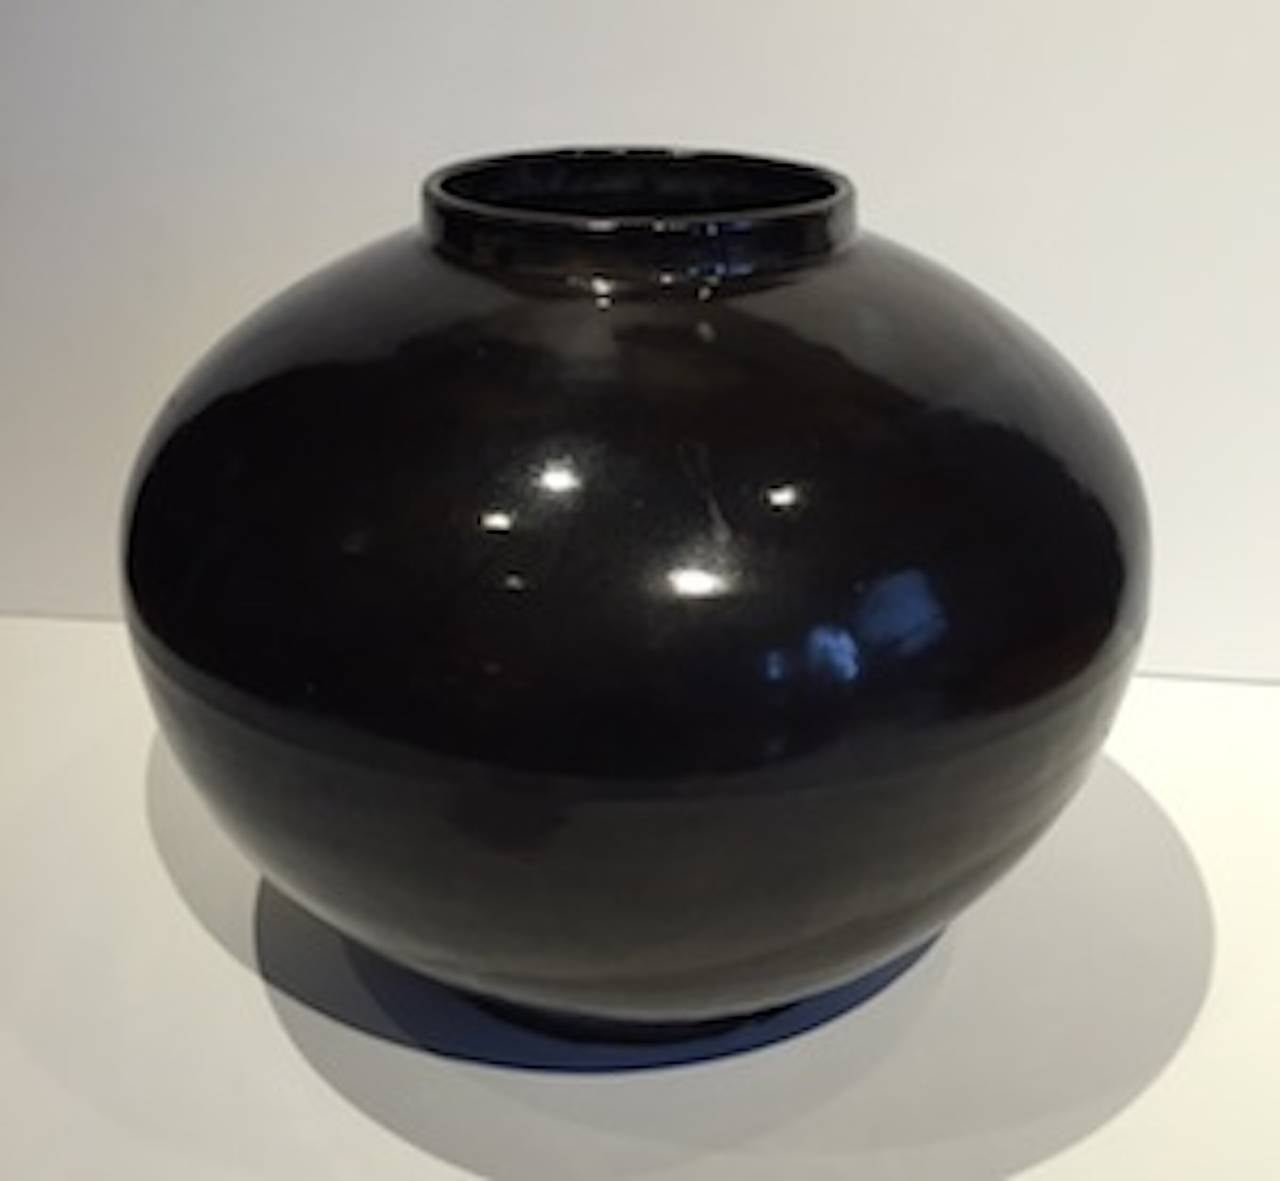 Collection of Extra Large High Gloss Black Vases, China, Contemporary For Sale 1